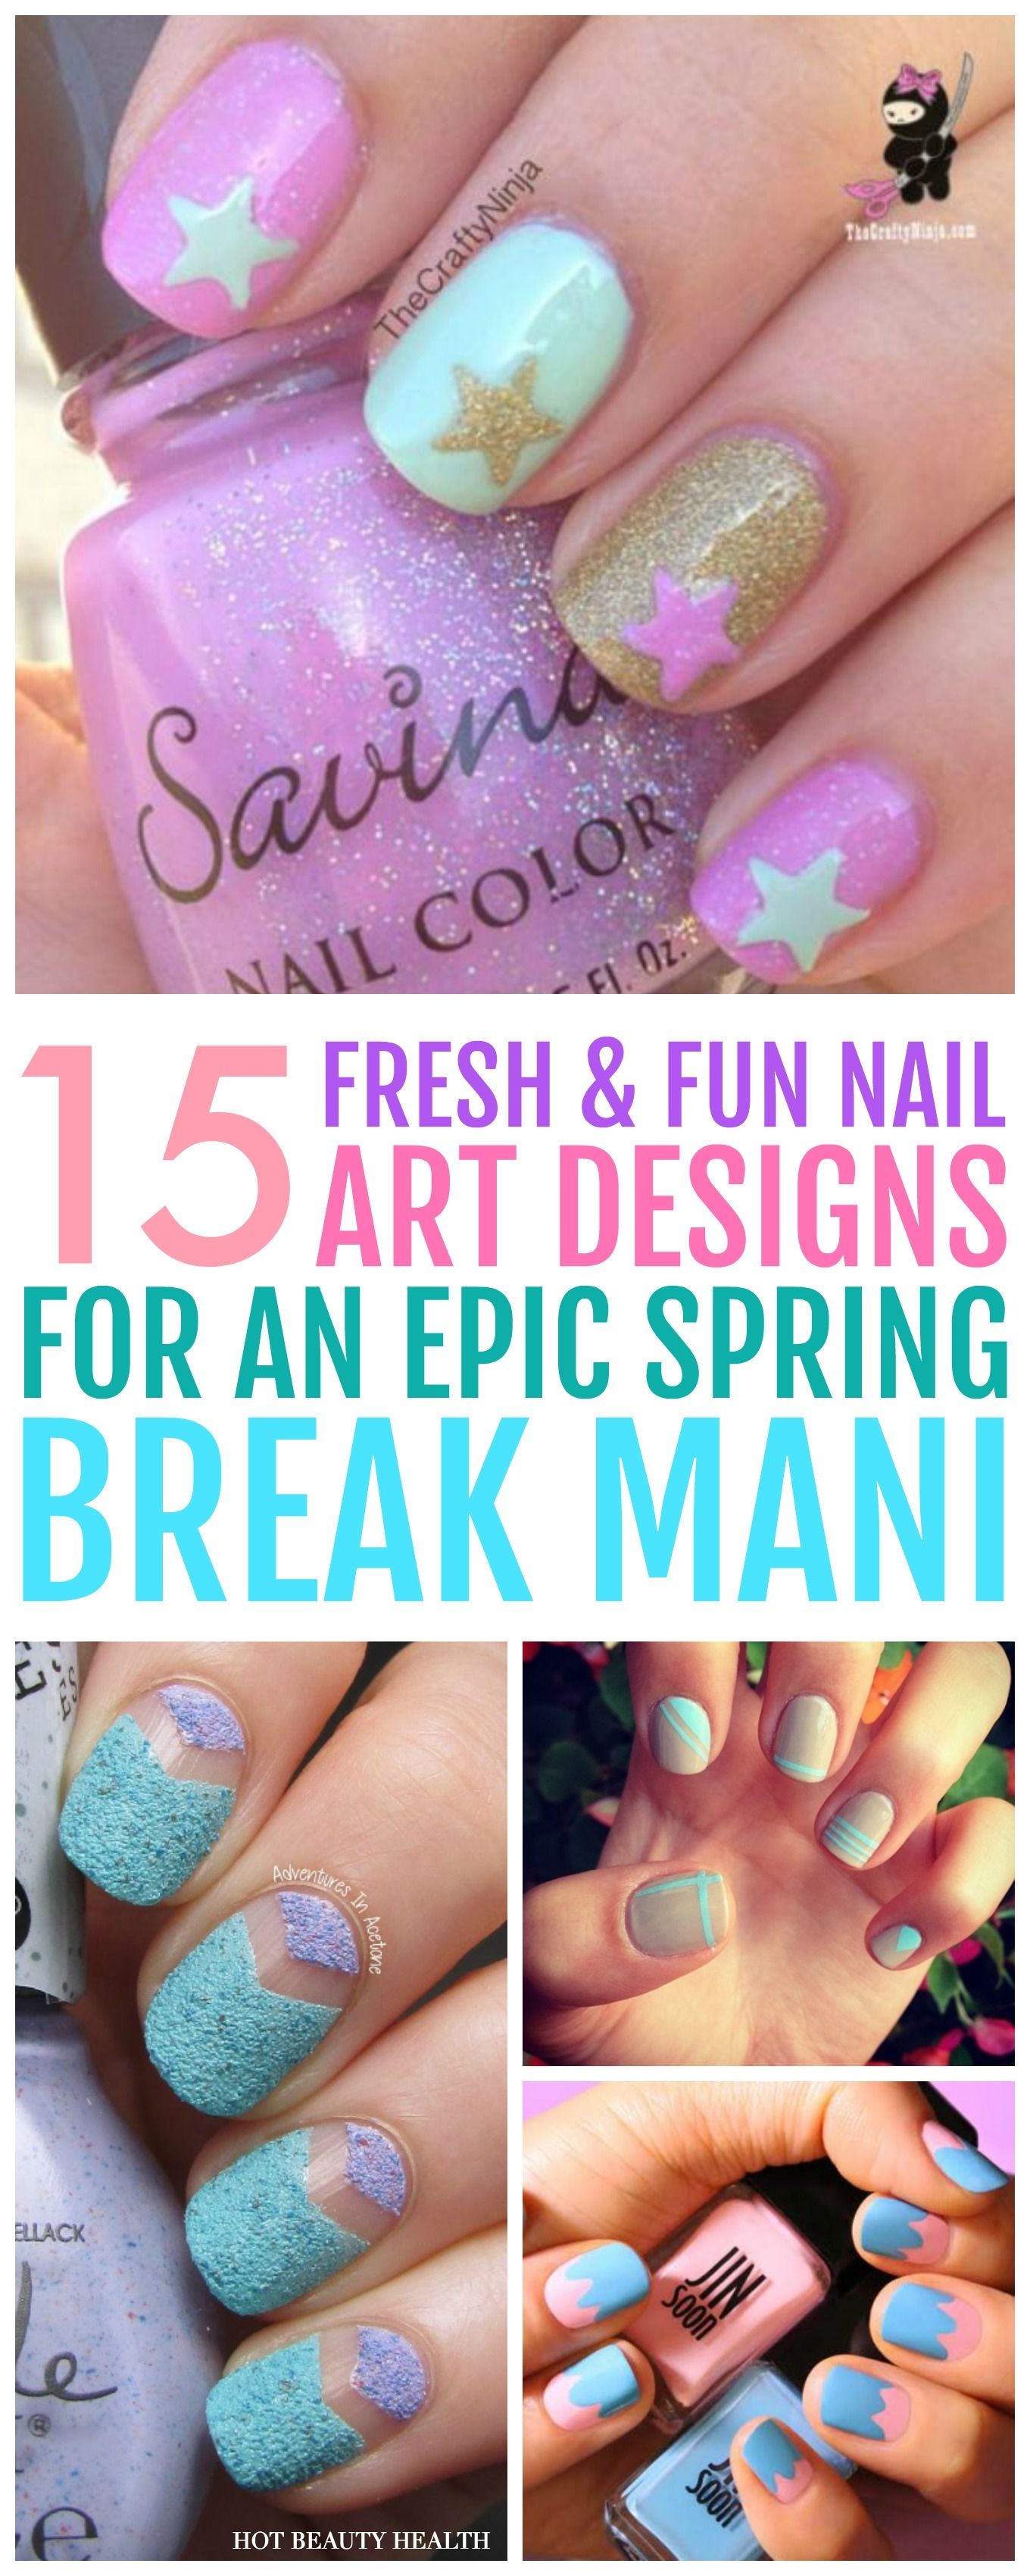 15 Cute Spring Nail Art Designs To Spruce Up Your Next Mani | Hot ...